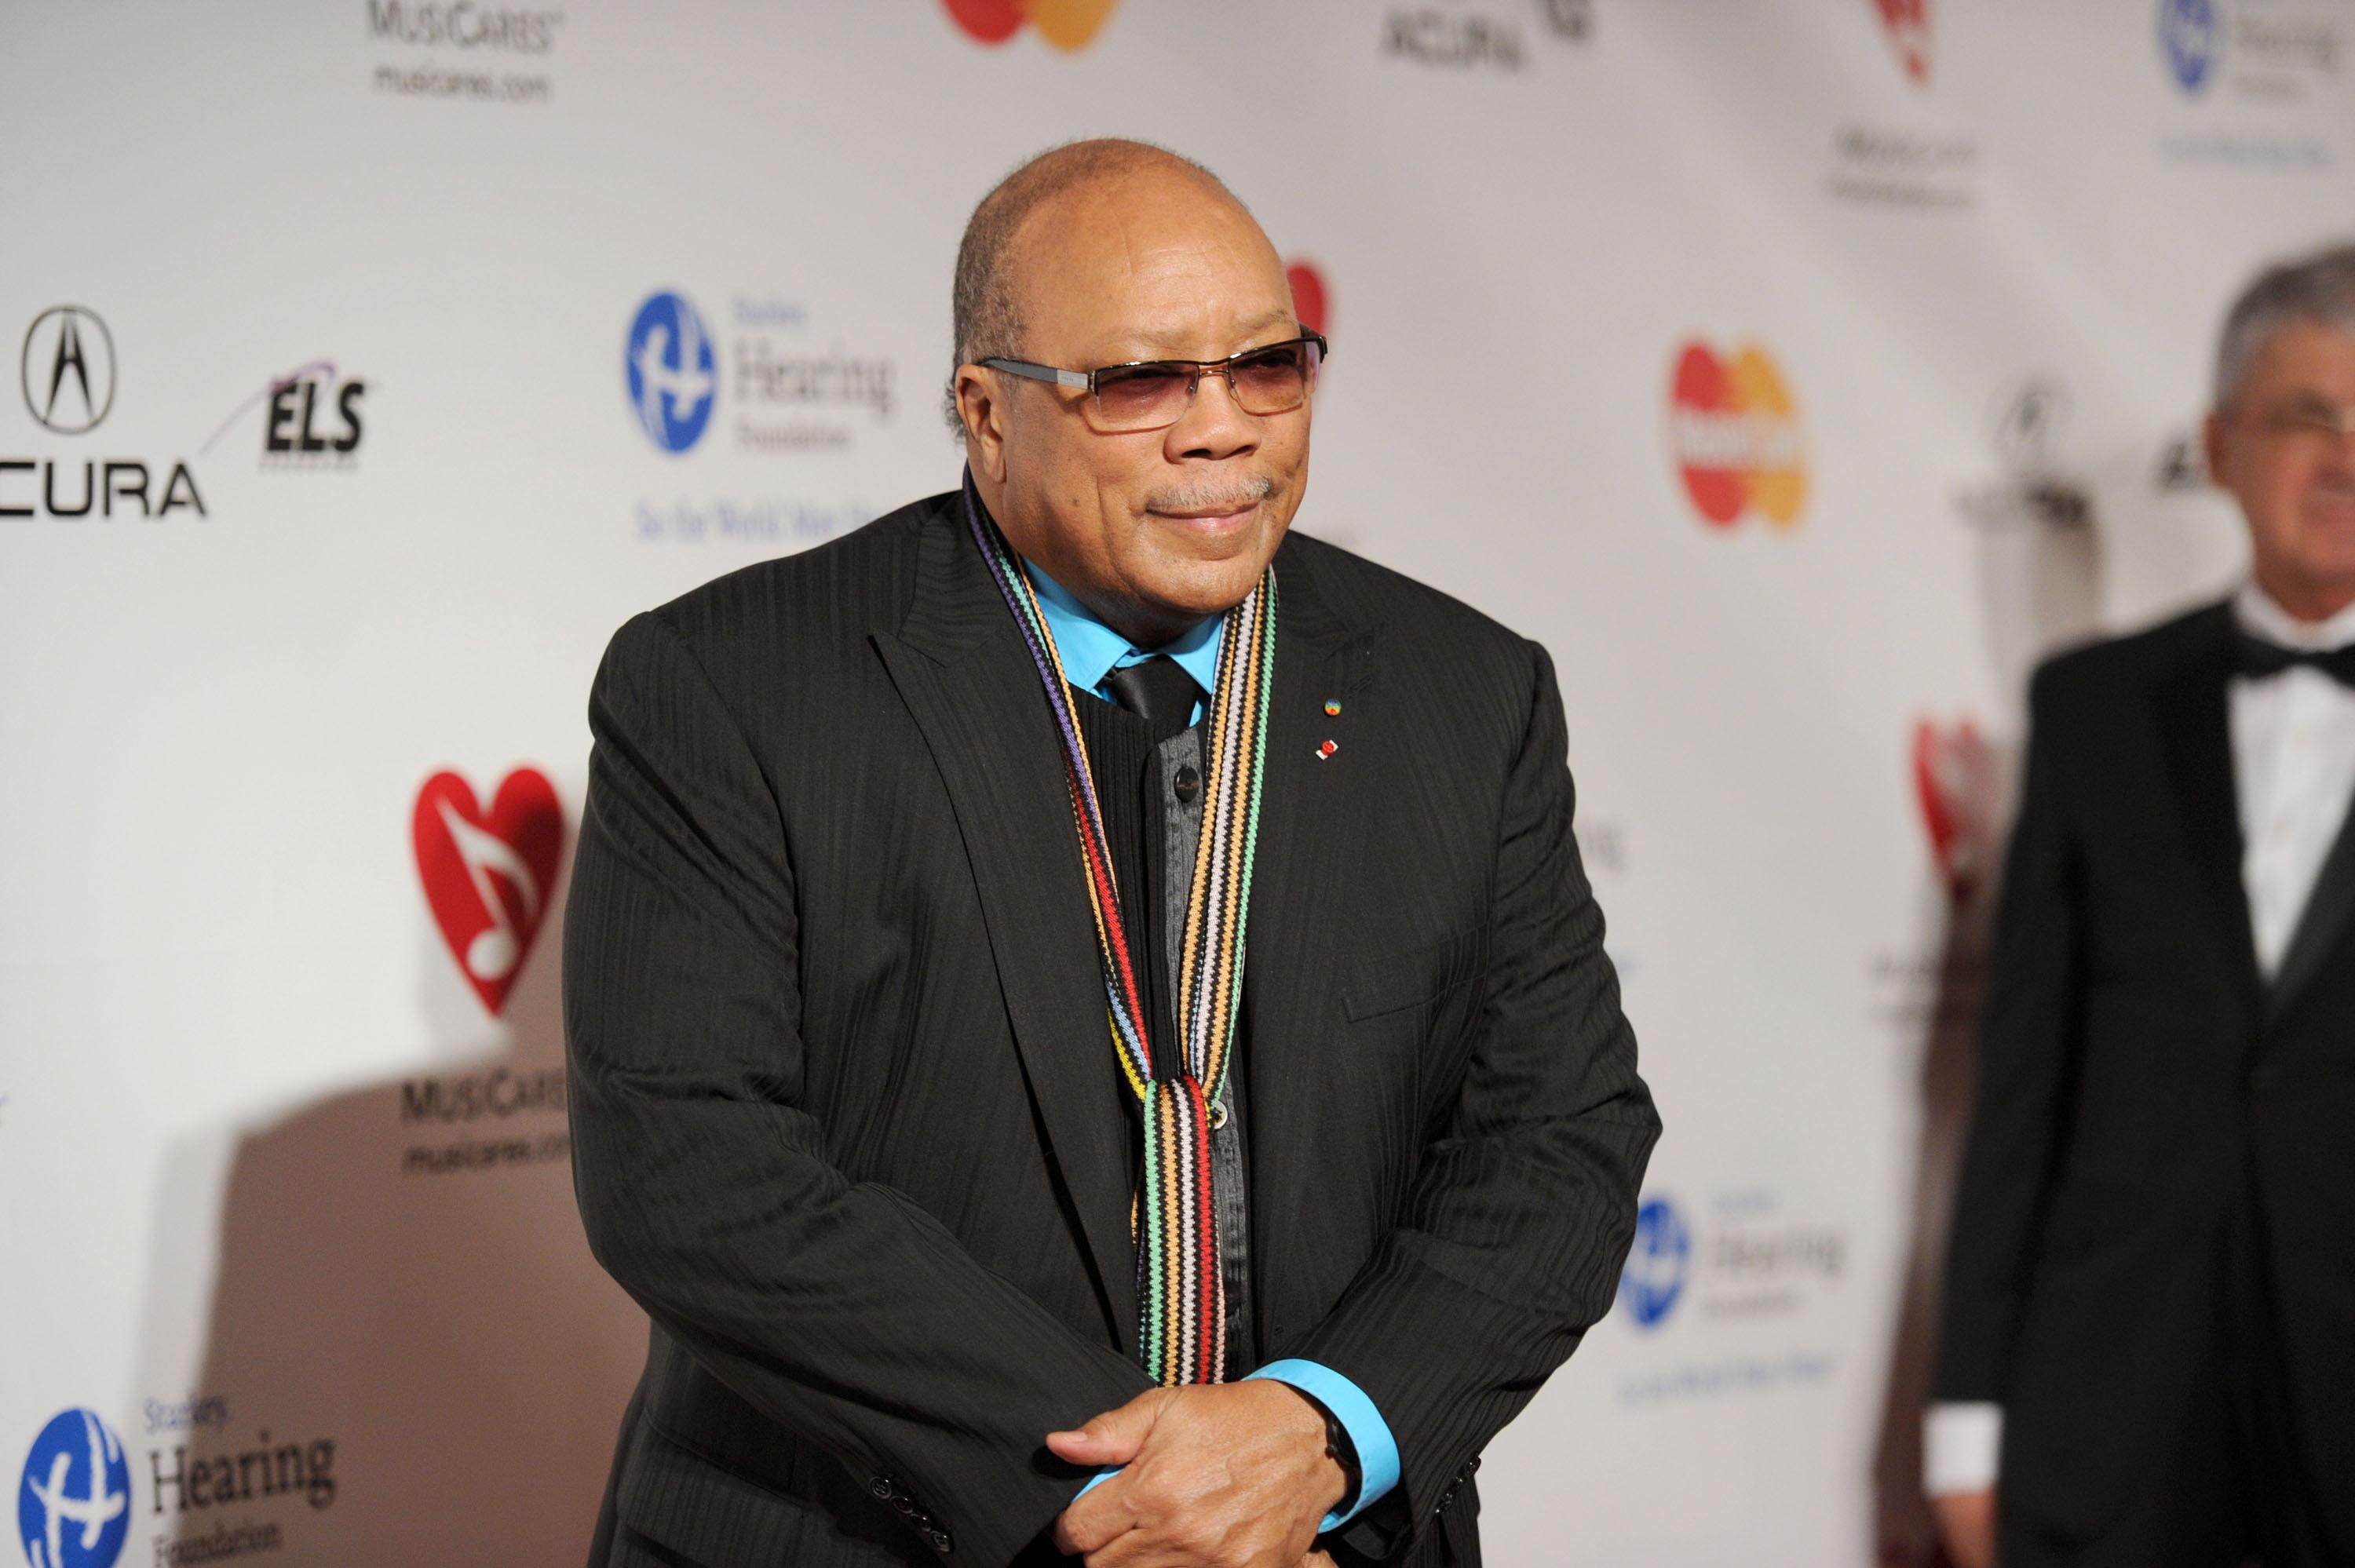 2011 MusiCares Person Of The Year Tribute To Barbra Streisand - Arrivals